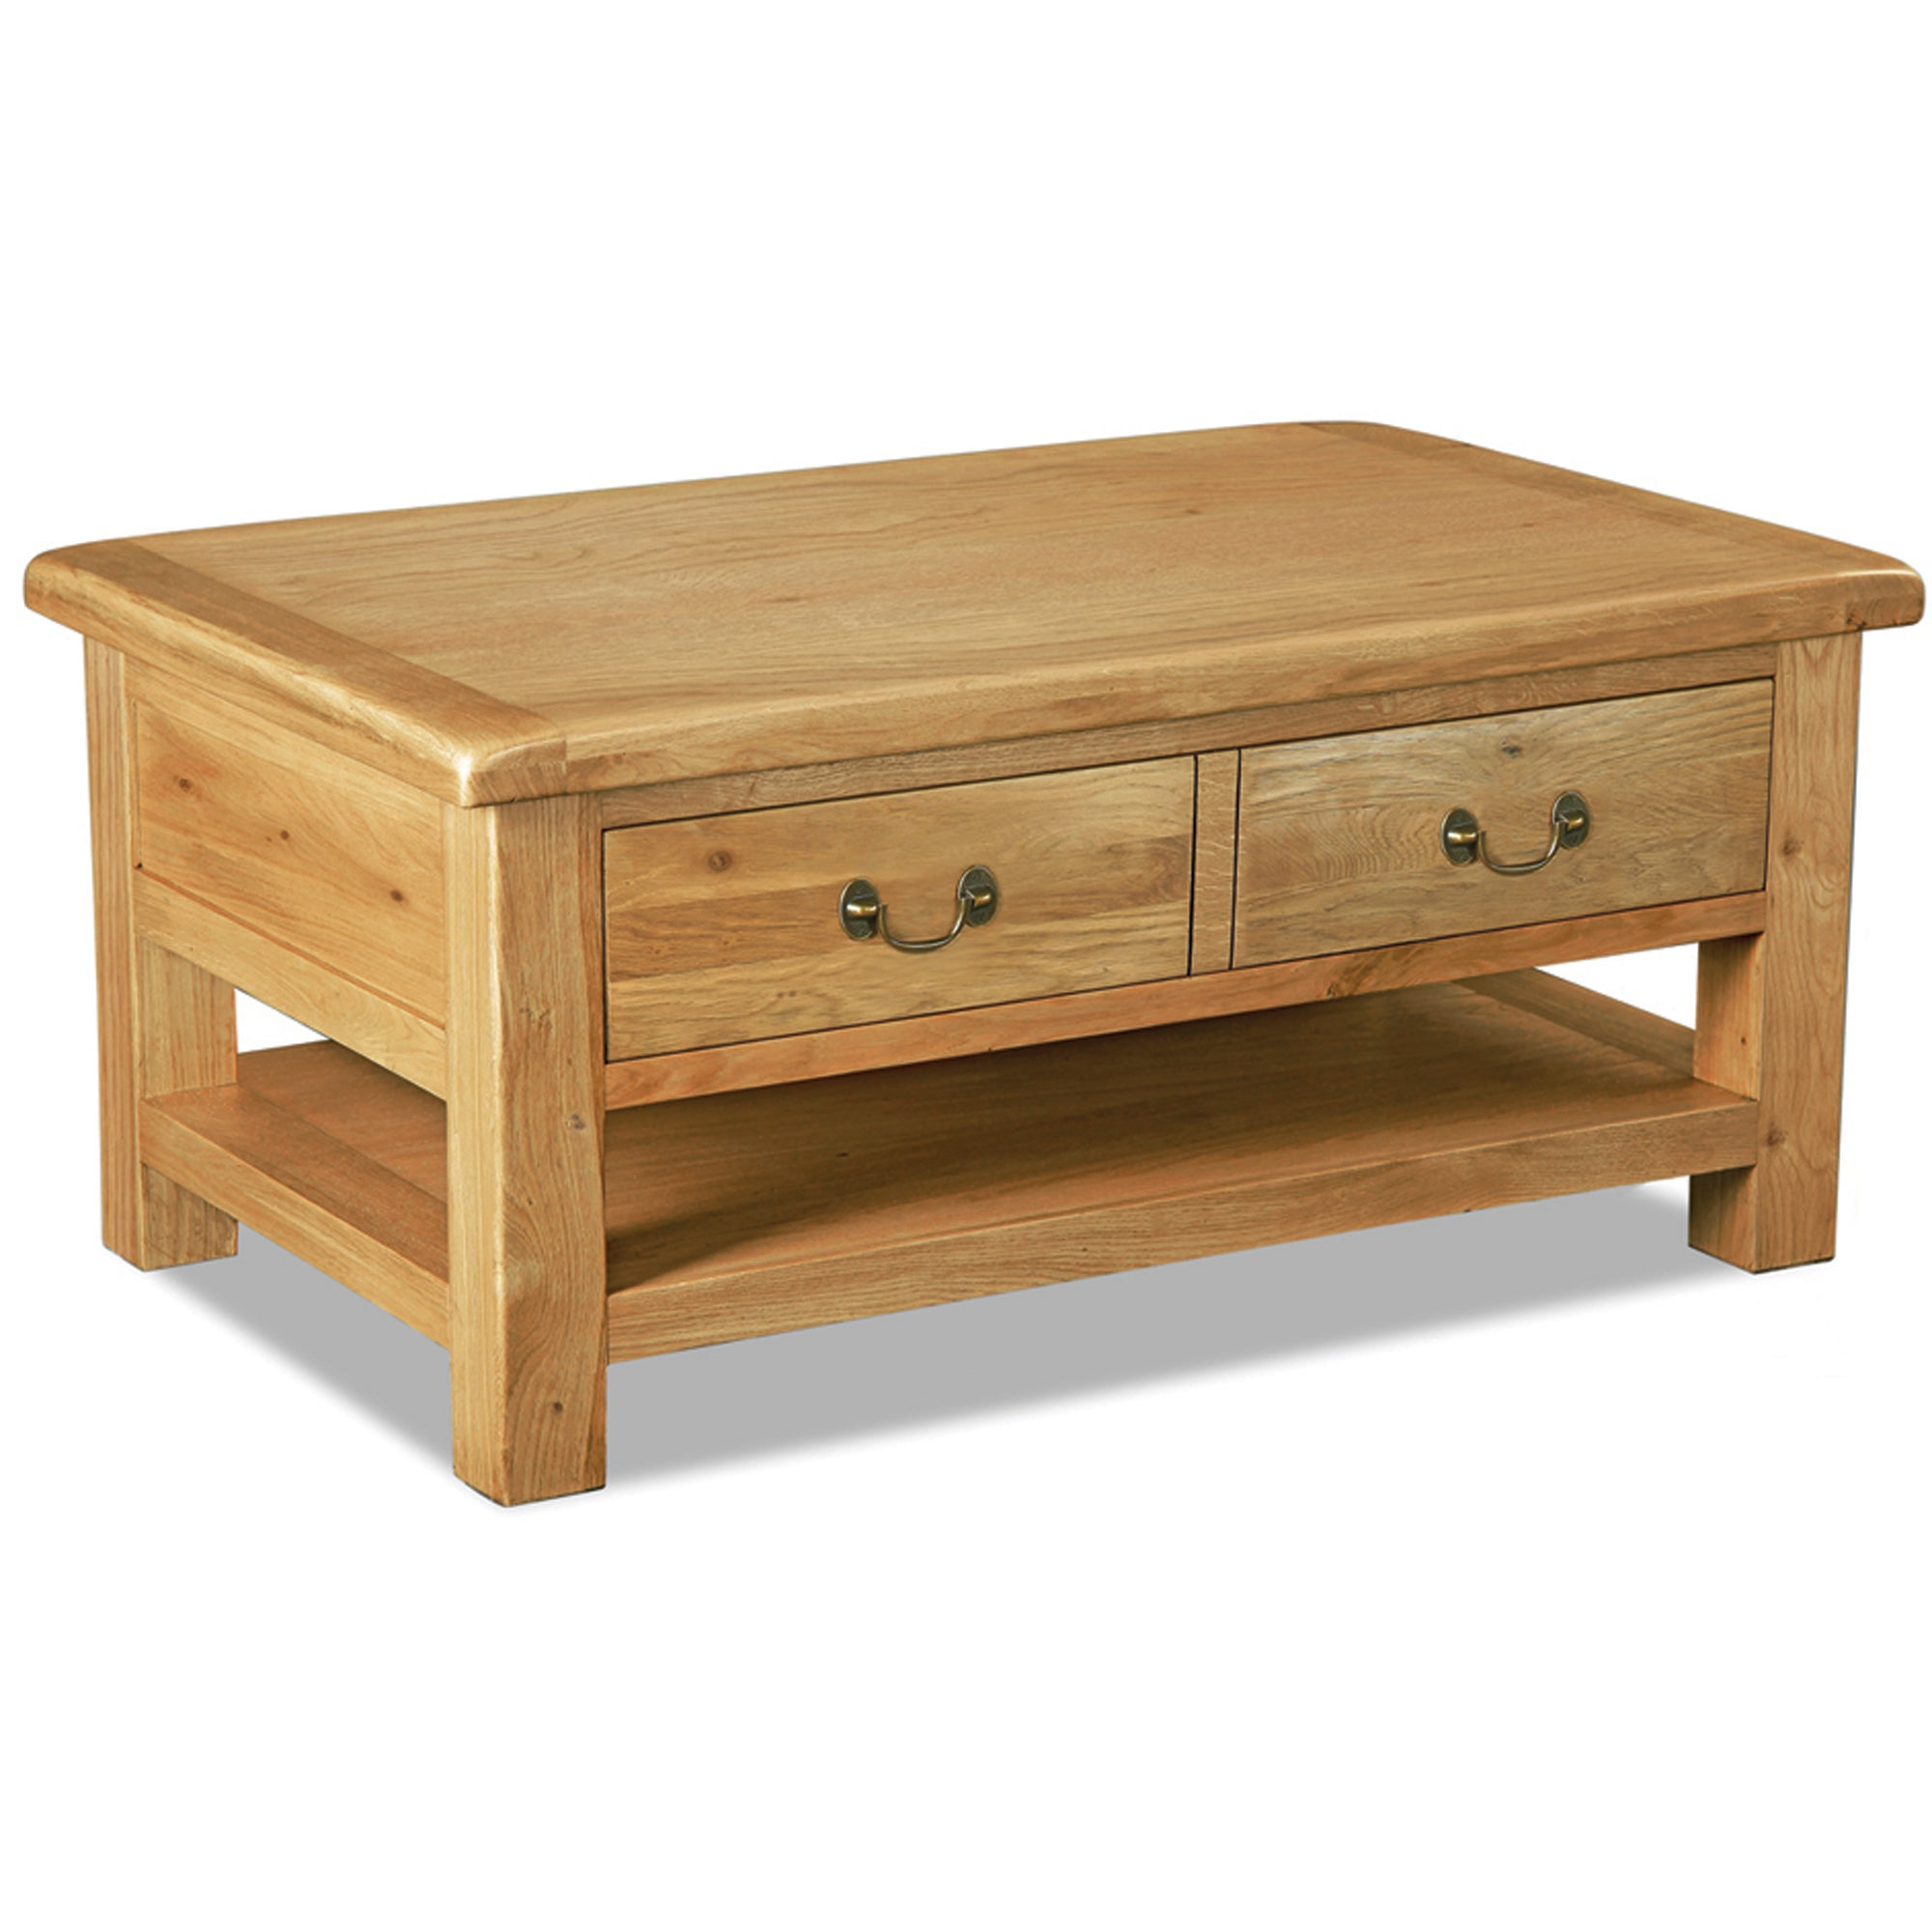 Wexford Oak Coffee Table